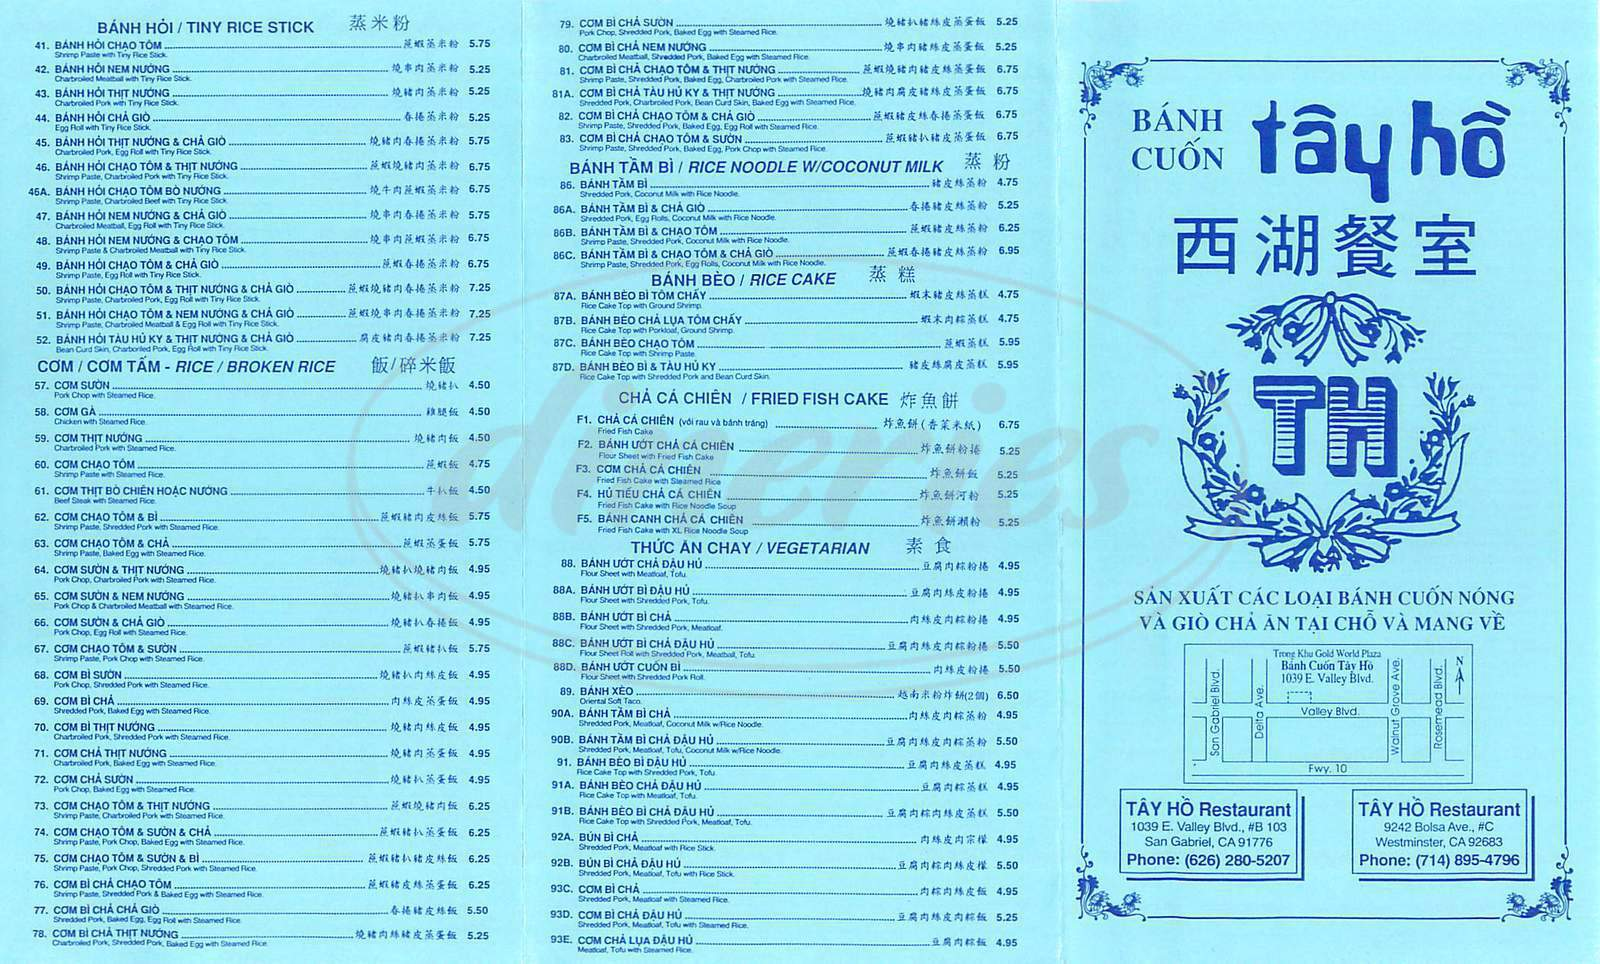 menu for Tay Ho Restaurant